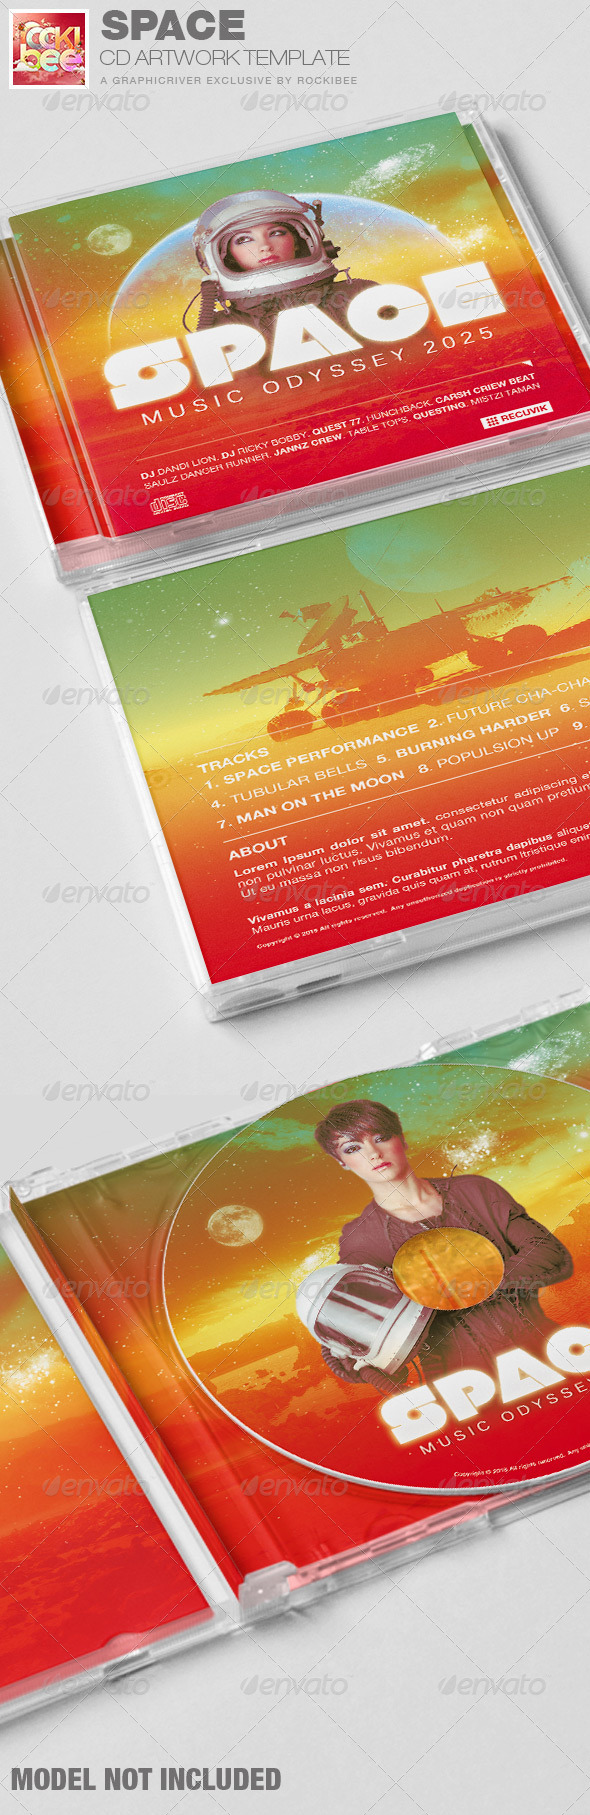 GraphicRiver Space CD Artwork Template 6753455